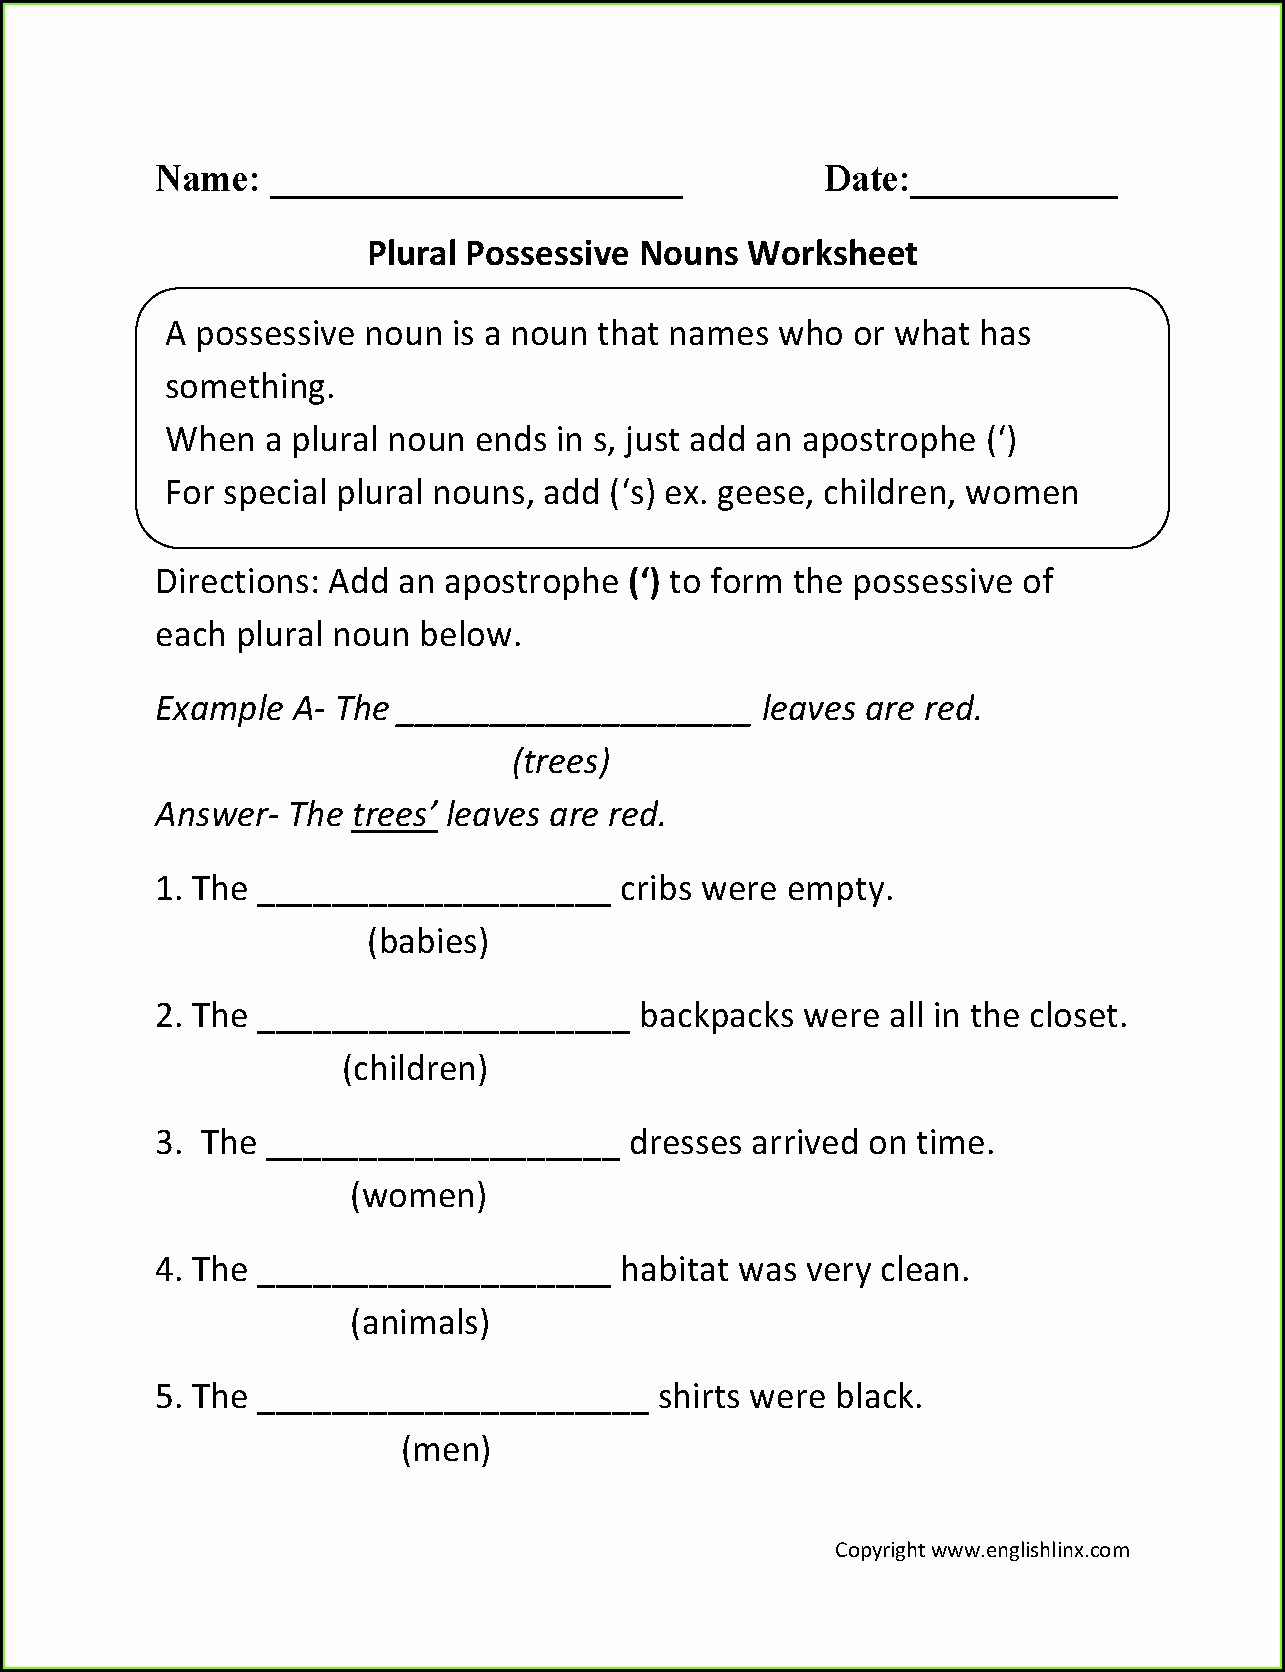 6th Grade Pronoun Worksheets Possessive Pronouns Worksheet 5th Grade